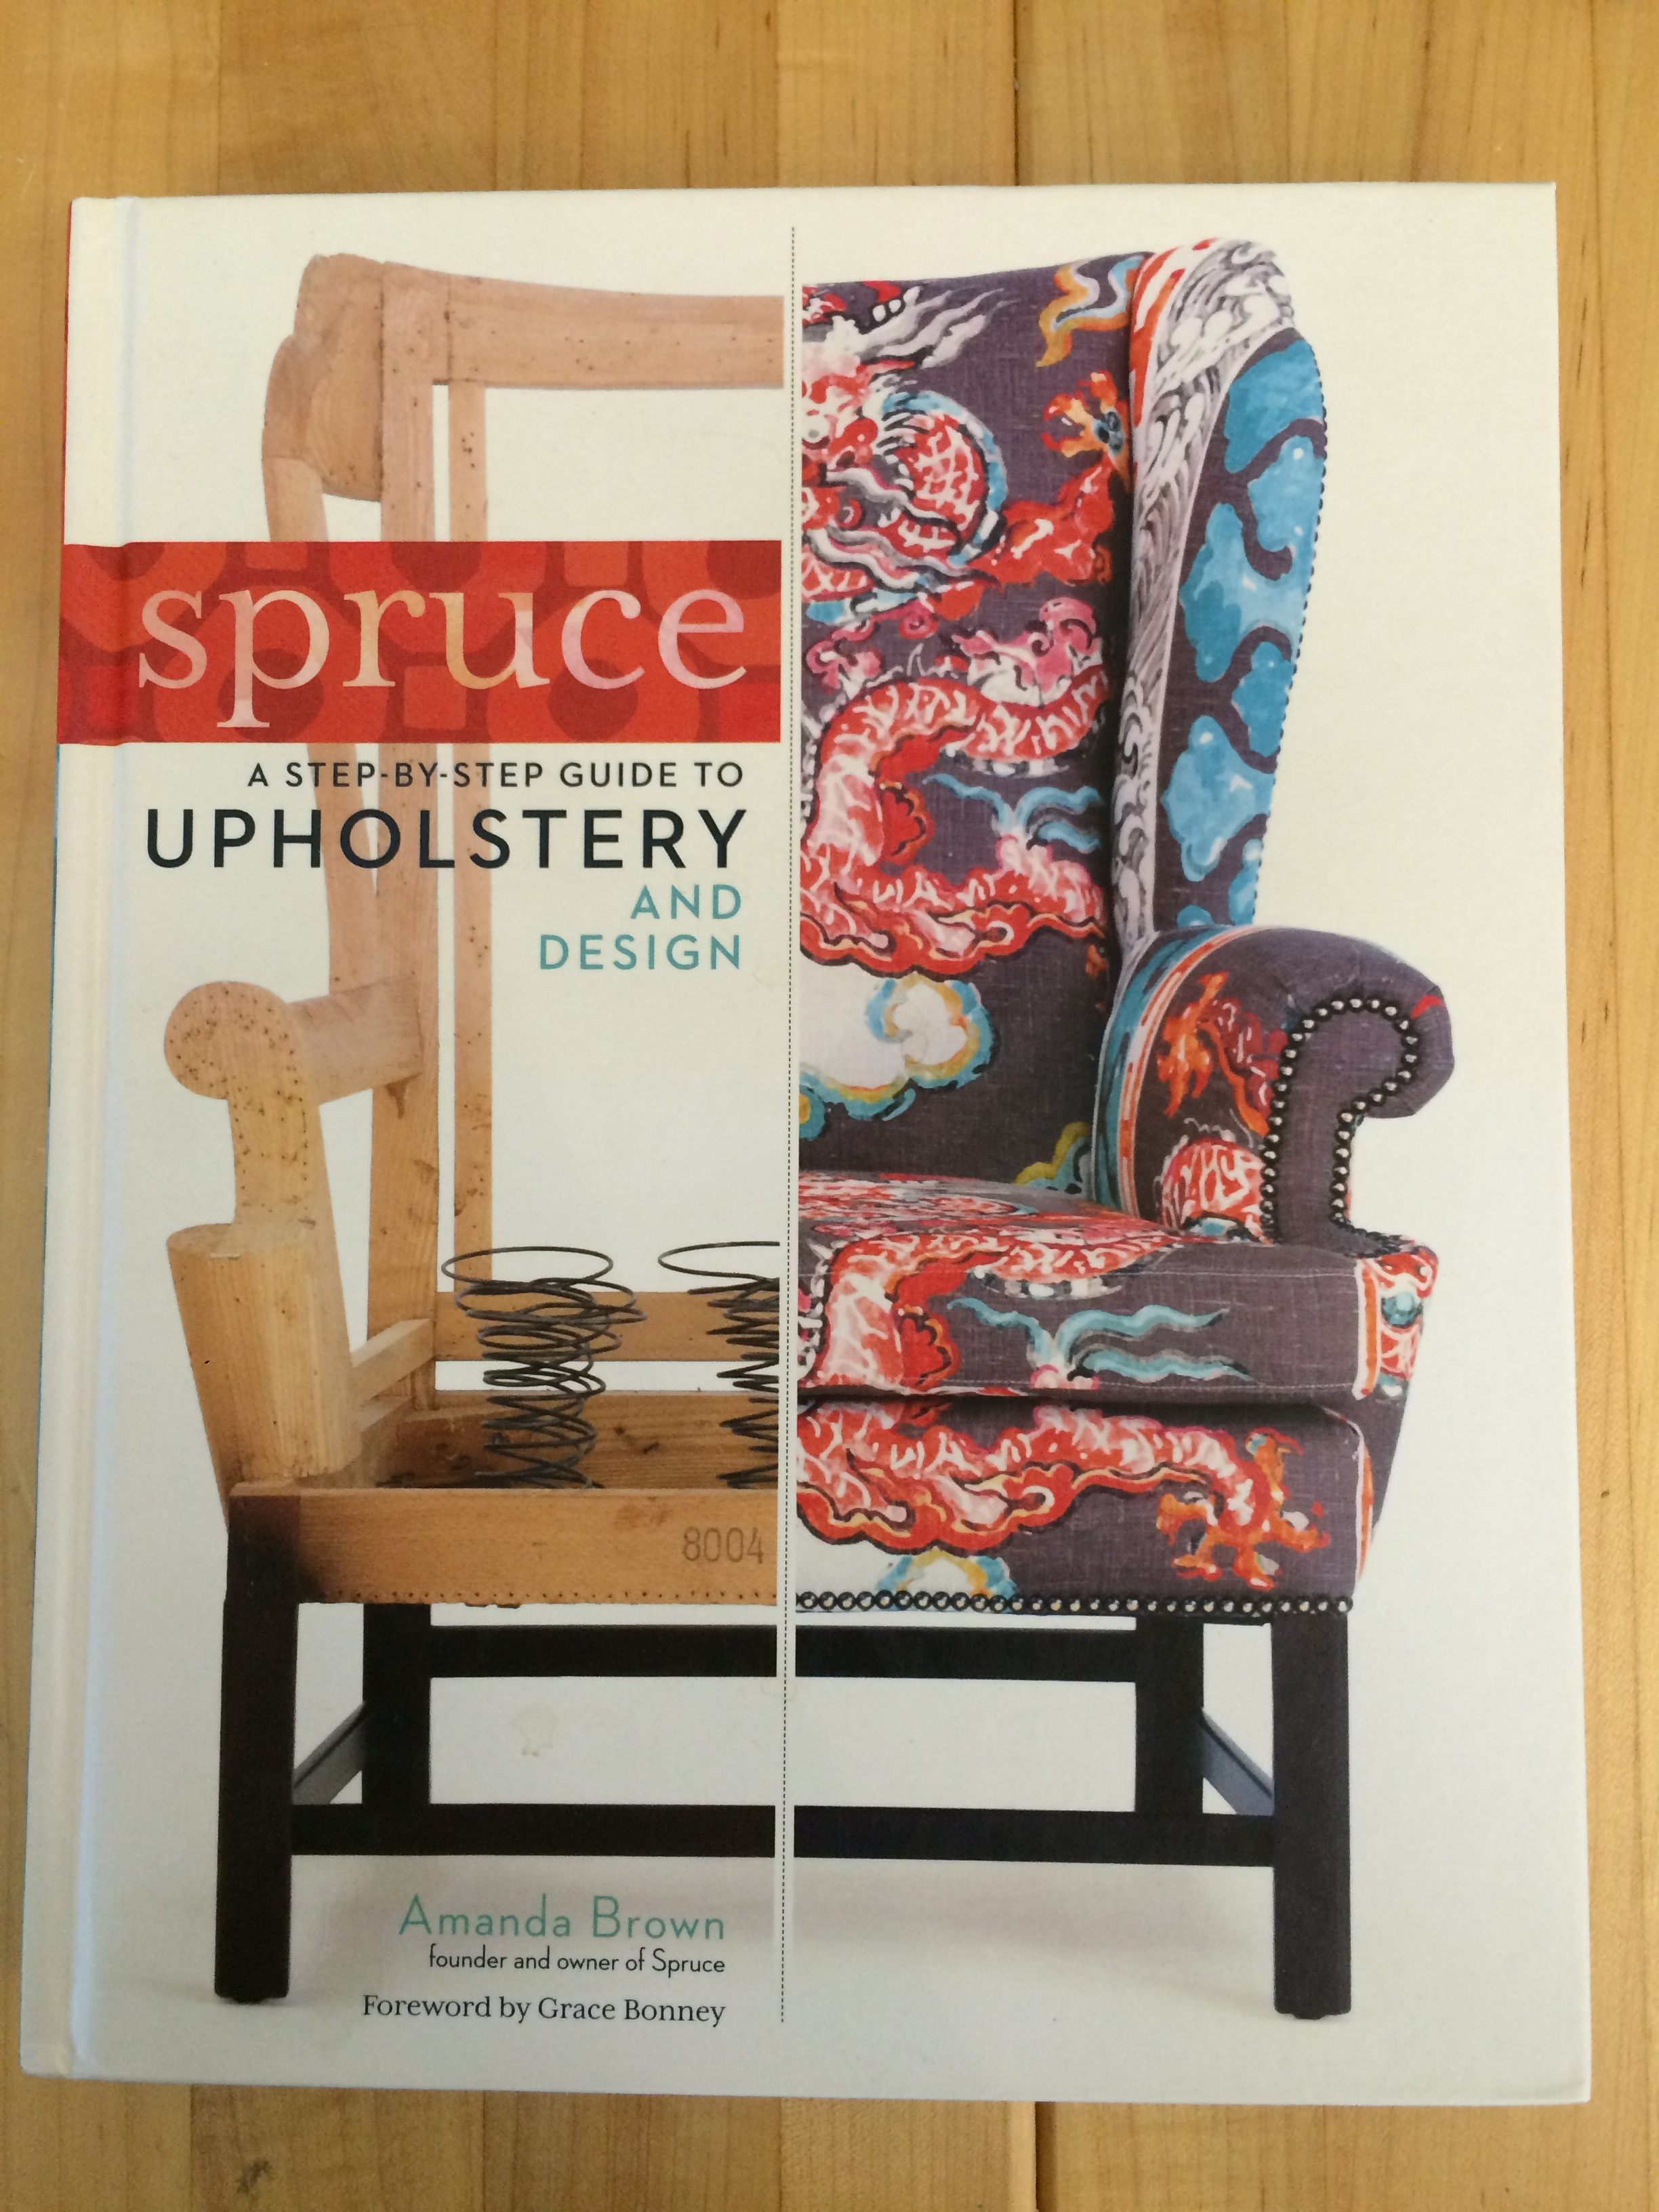 Stip-by-step Upholstery and Design